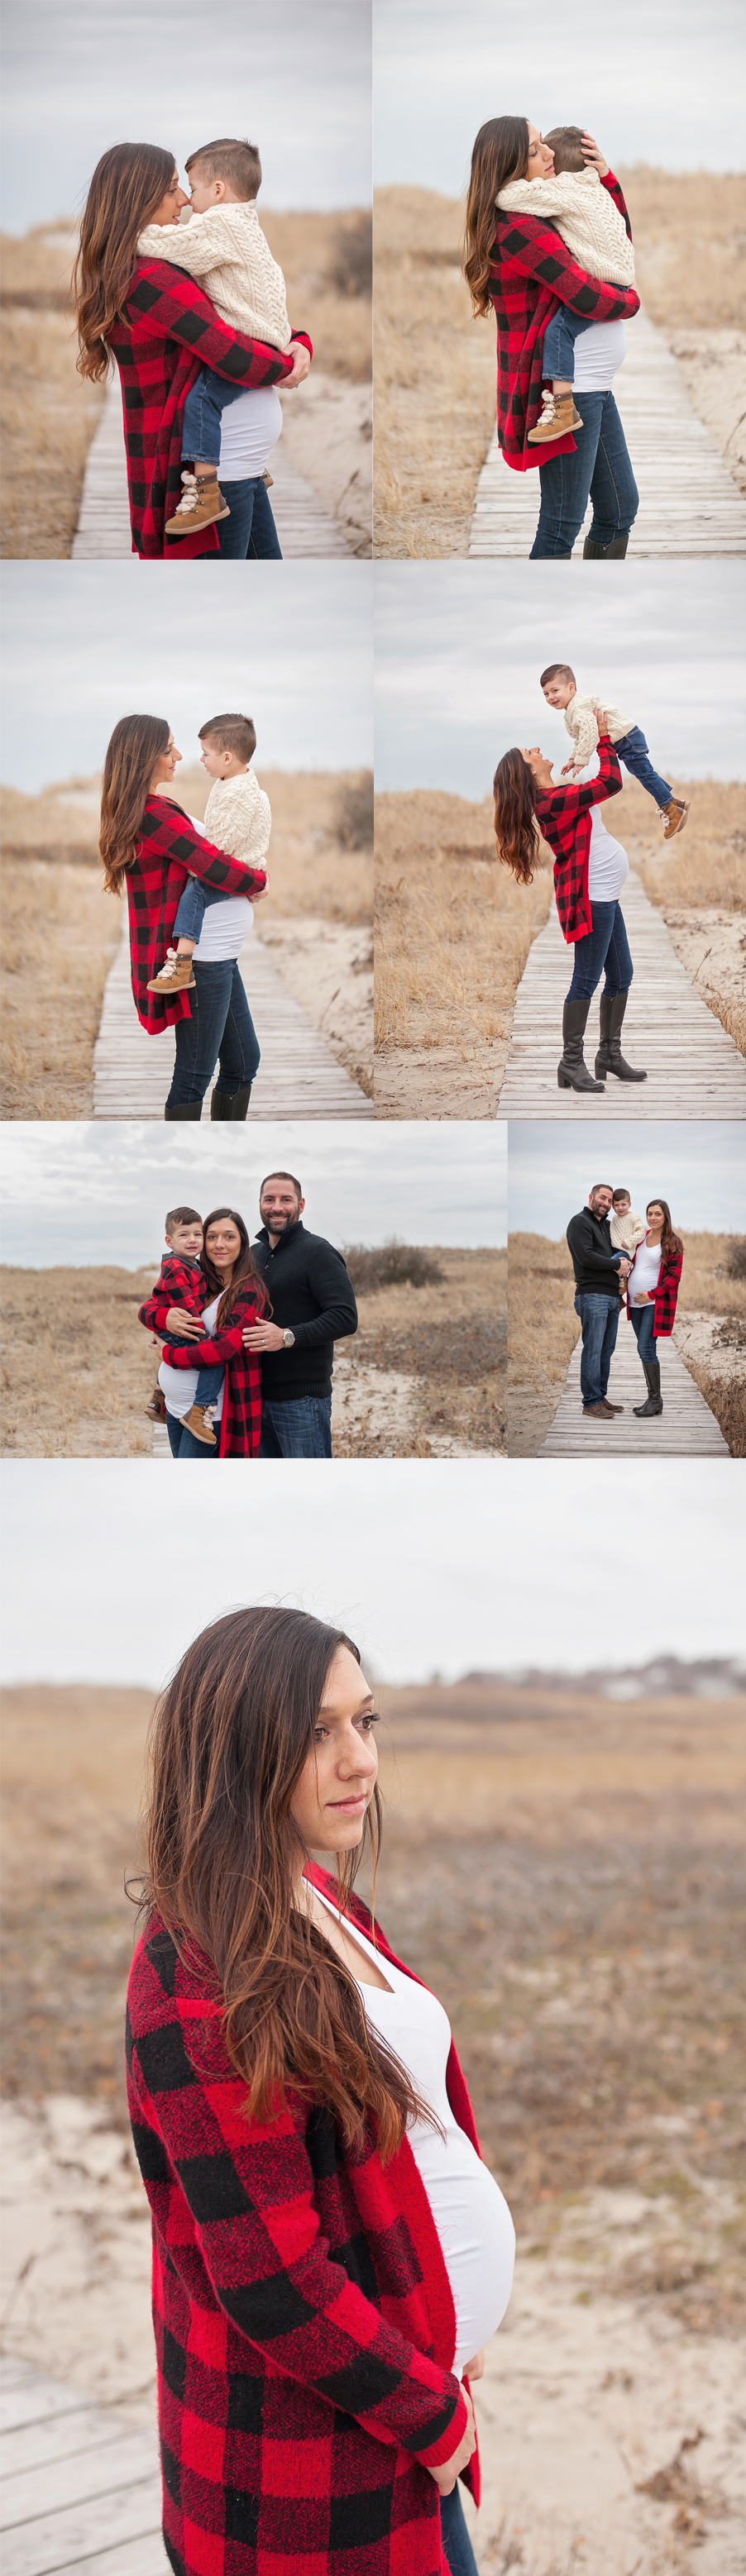 massachusetts winter beach family maternity mini session